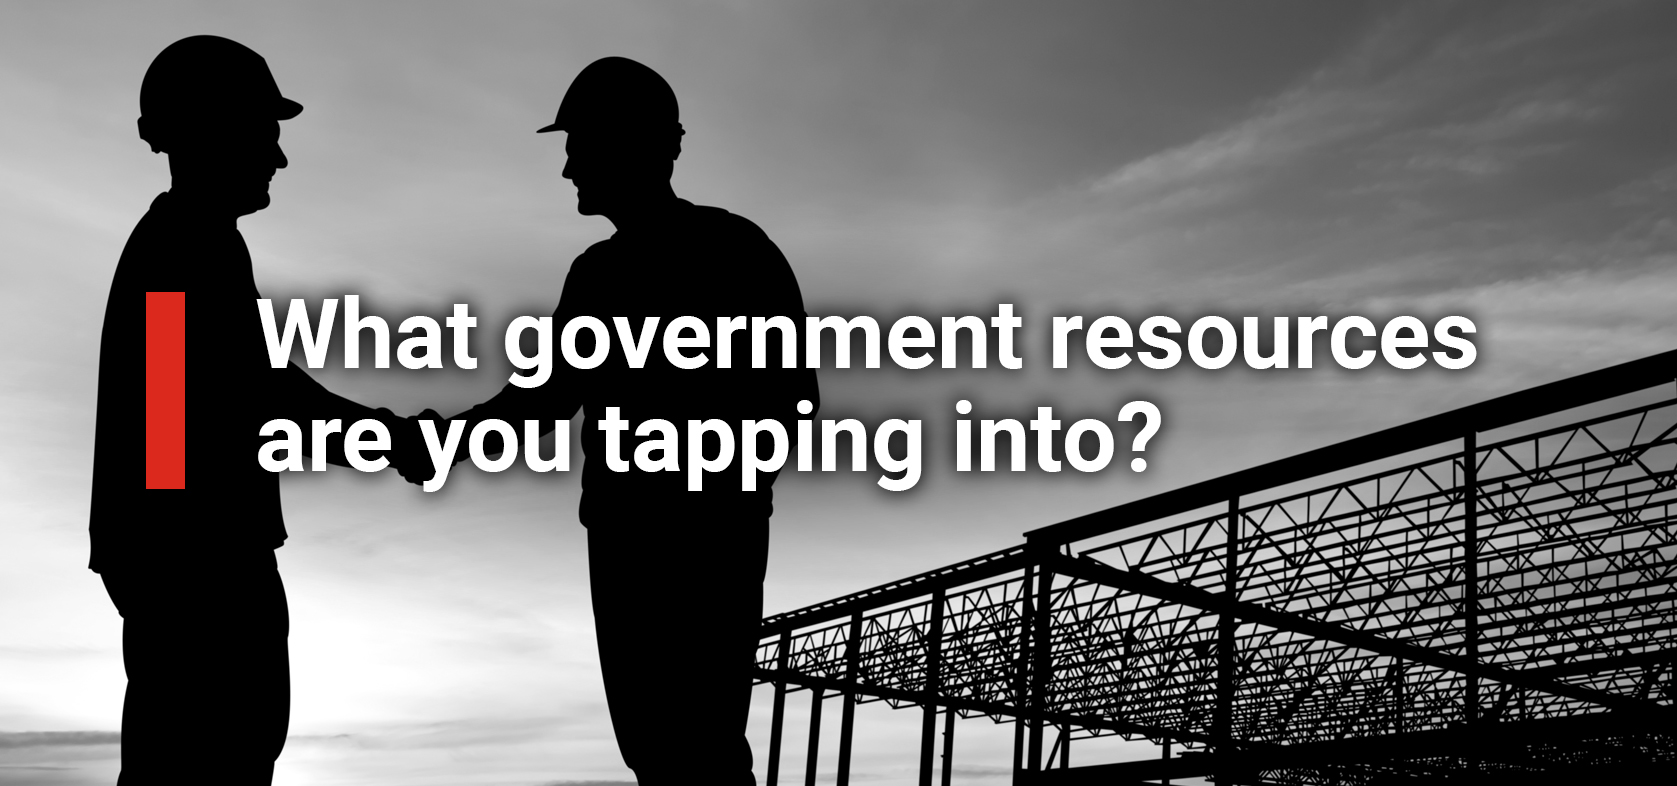 tapping-into-government-resources